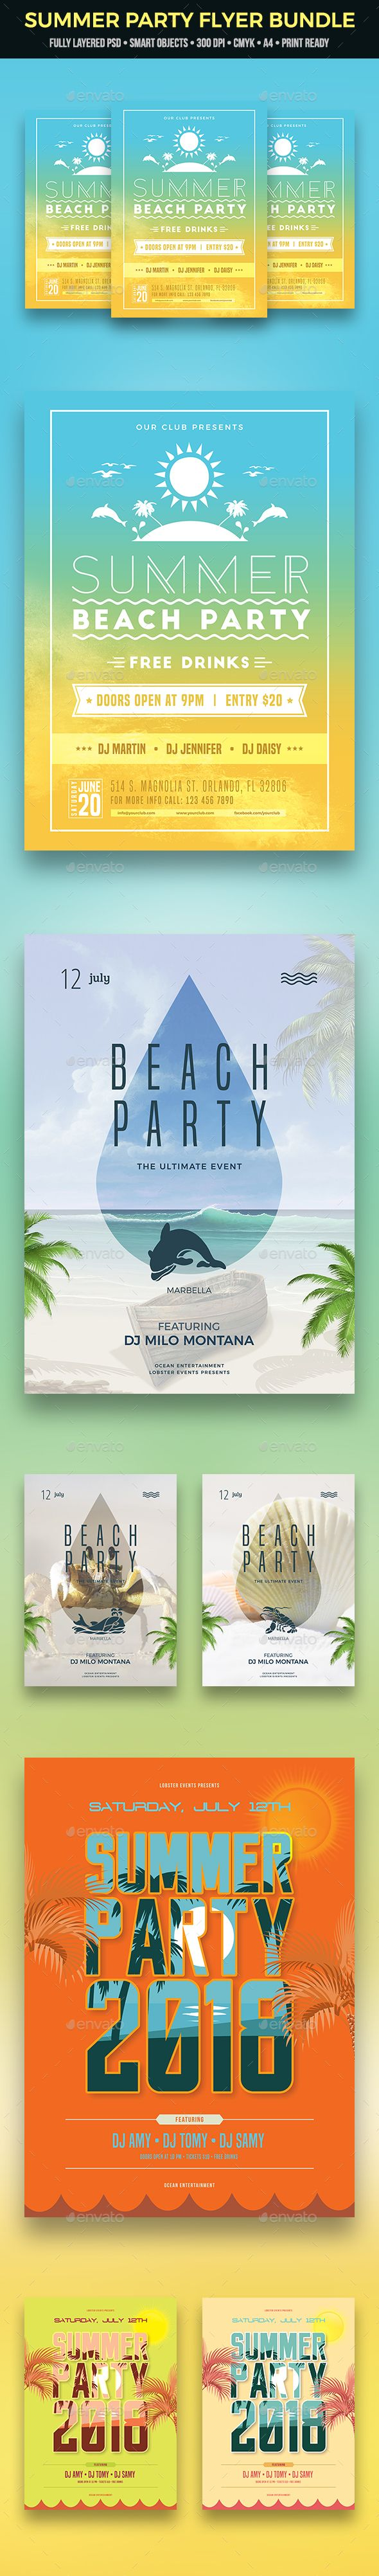 Best Awesome Summer Party Flyers Images On